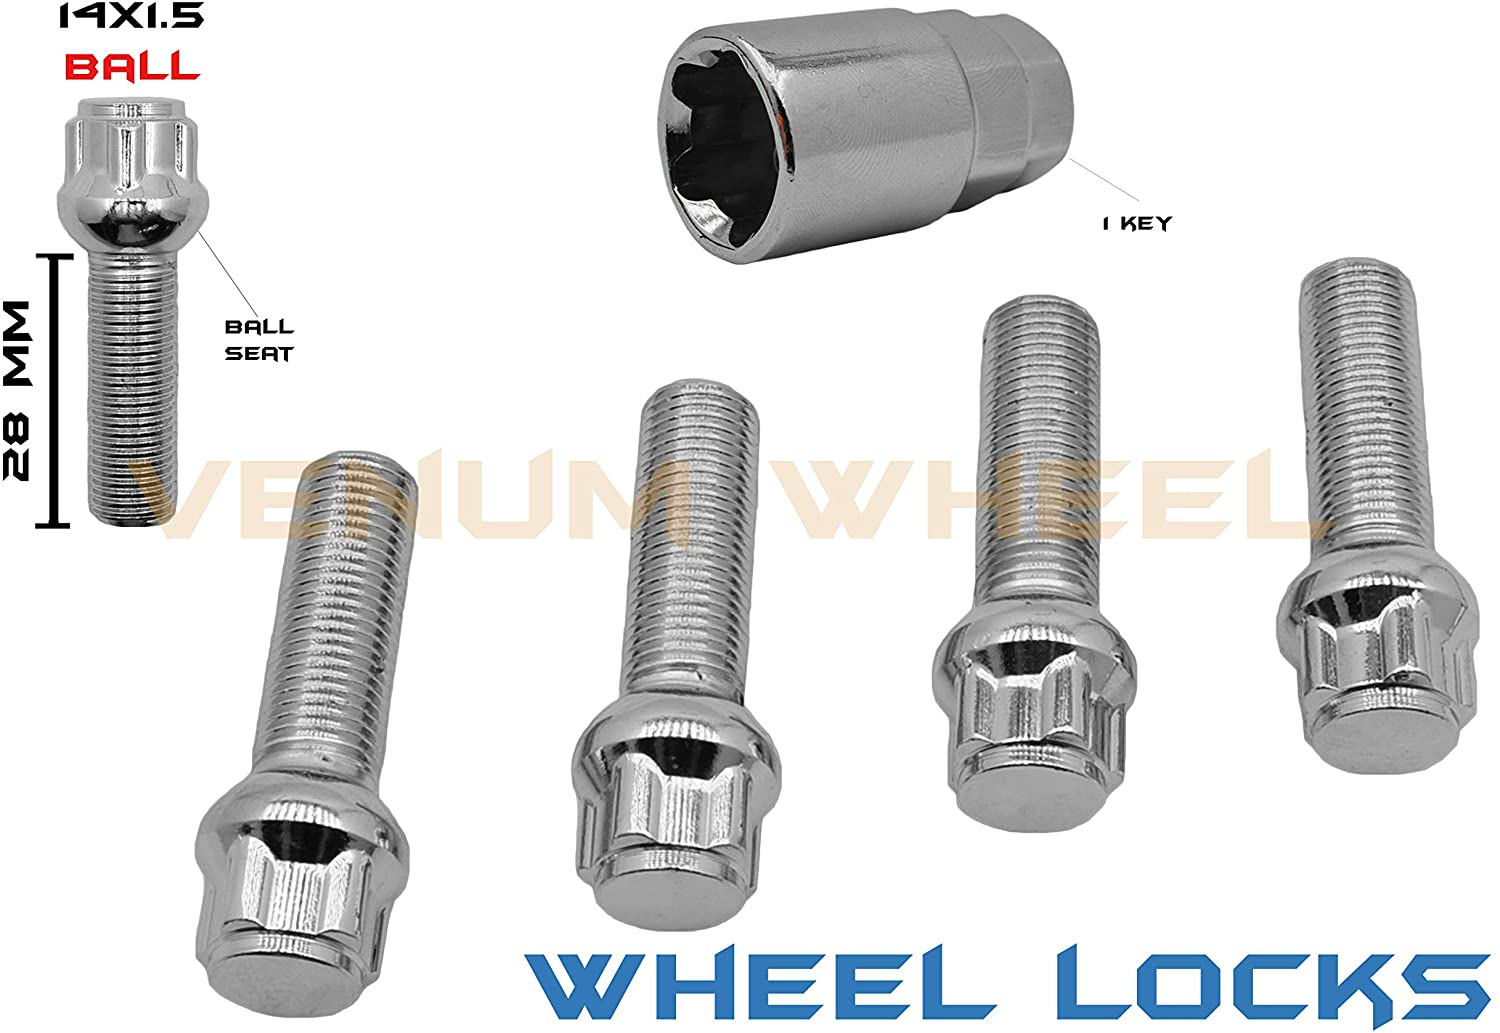 5 Pc Chrome Ball Seat Wheel Locks M14x1.5 Locking Lug Bolts Steel (28 MM) Stock Shank With Key Tool Included Compatible With Audi Mercedes Benz Volkswagen W/Factory Wheels